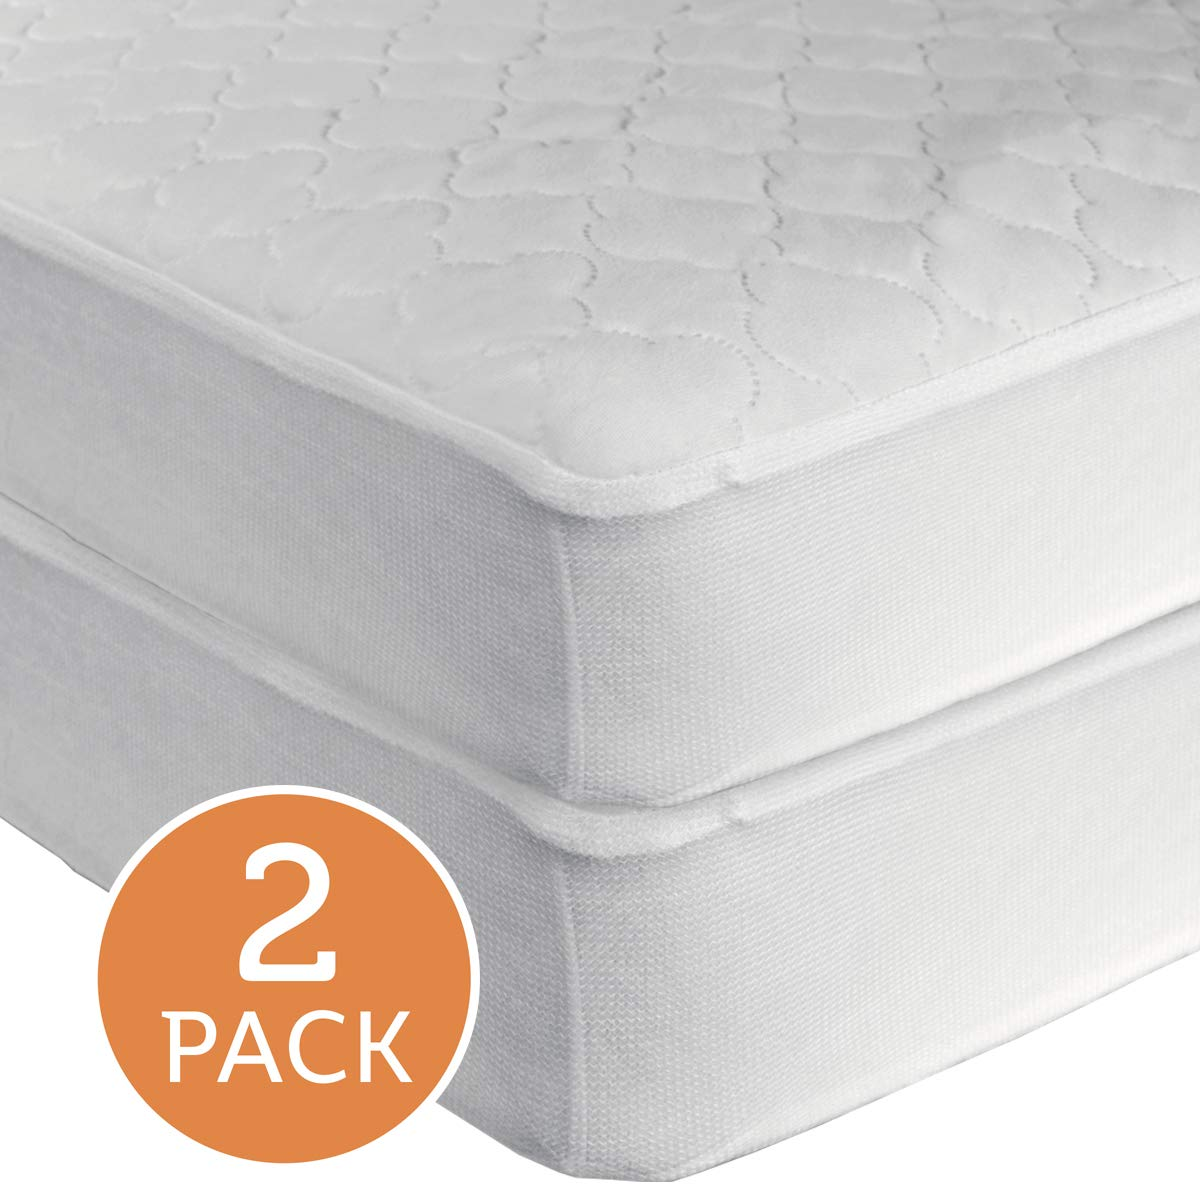 Very Helpful Crib Mattress Pad Amazon.com : Sealy Waterproof Fitted Toddler and Baby Crib Mattress Pad  Cover 2-Pack - 100% Waterproof, Deep Fitted Stretch Skirt, Machine Washable  u0026 Dryer ...